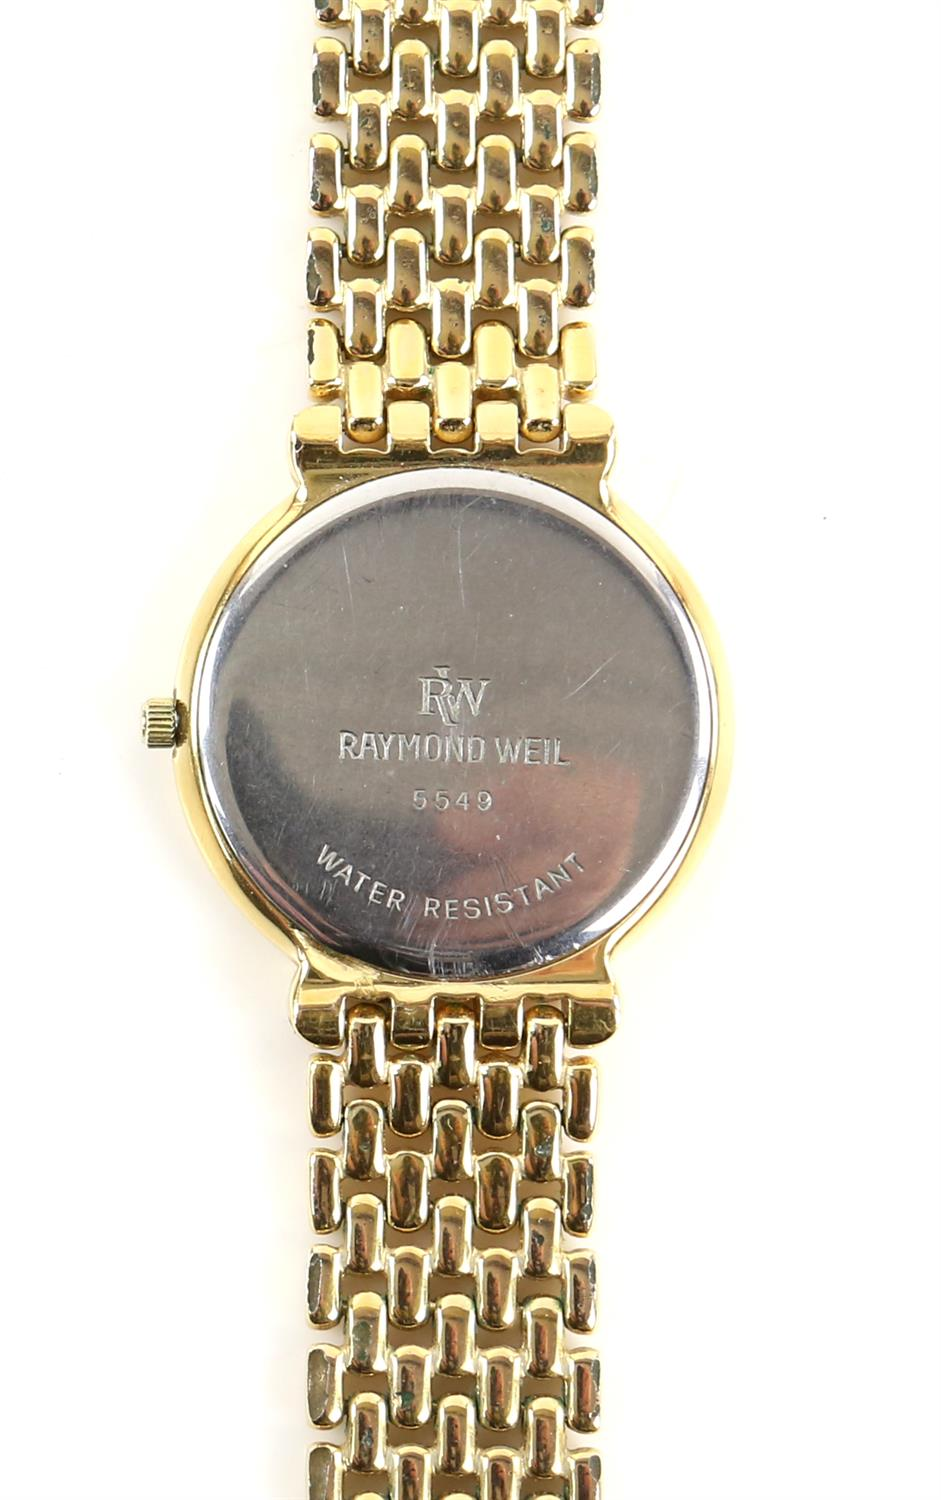 Raymond Weil, A Gentleman's reference 6549 dress watch with white enamel dial, baton hour markers, - Image 4 of 11